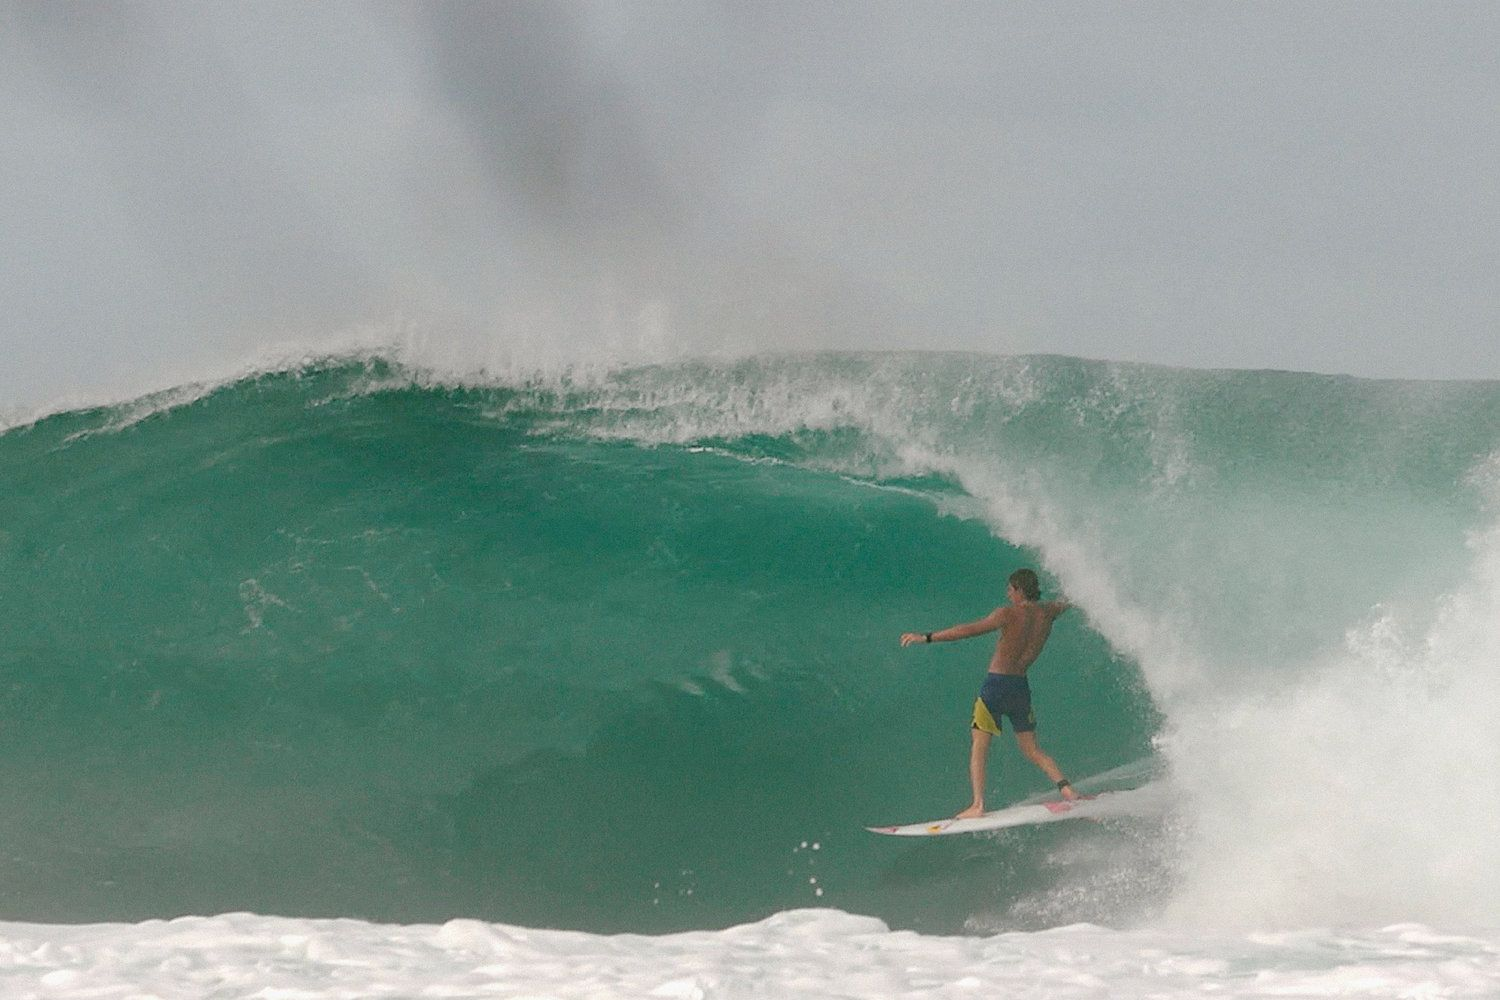 Italy's hottest surfer Leonardo Fioravanti serves up an Indonesian treat in this video.